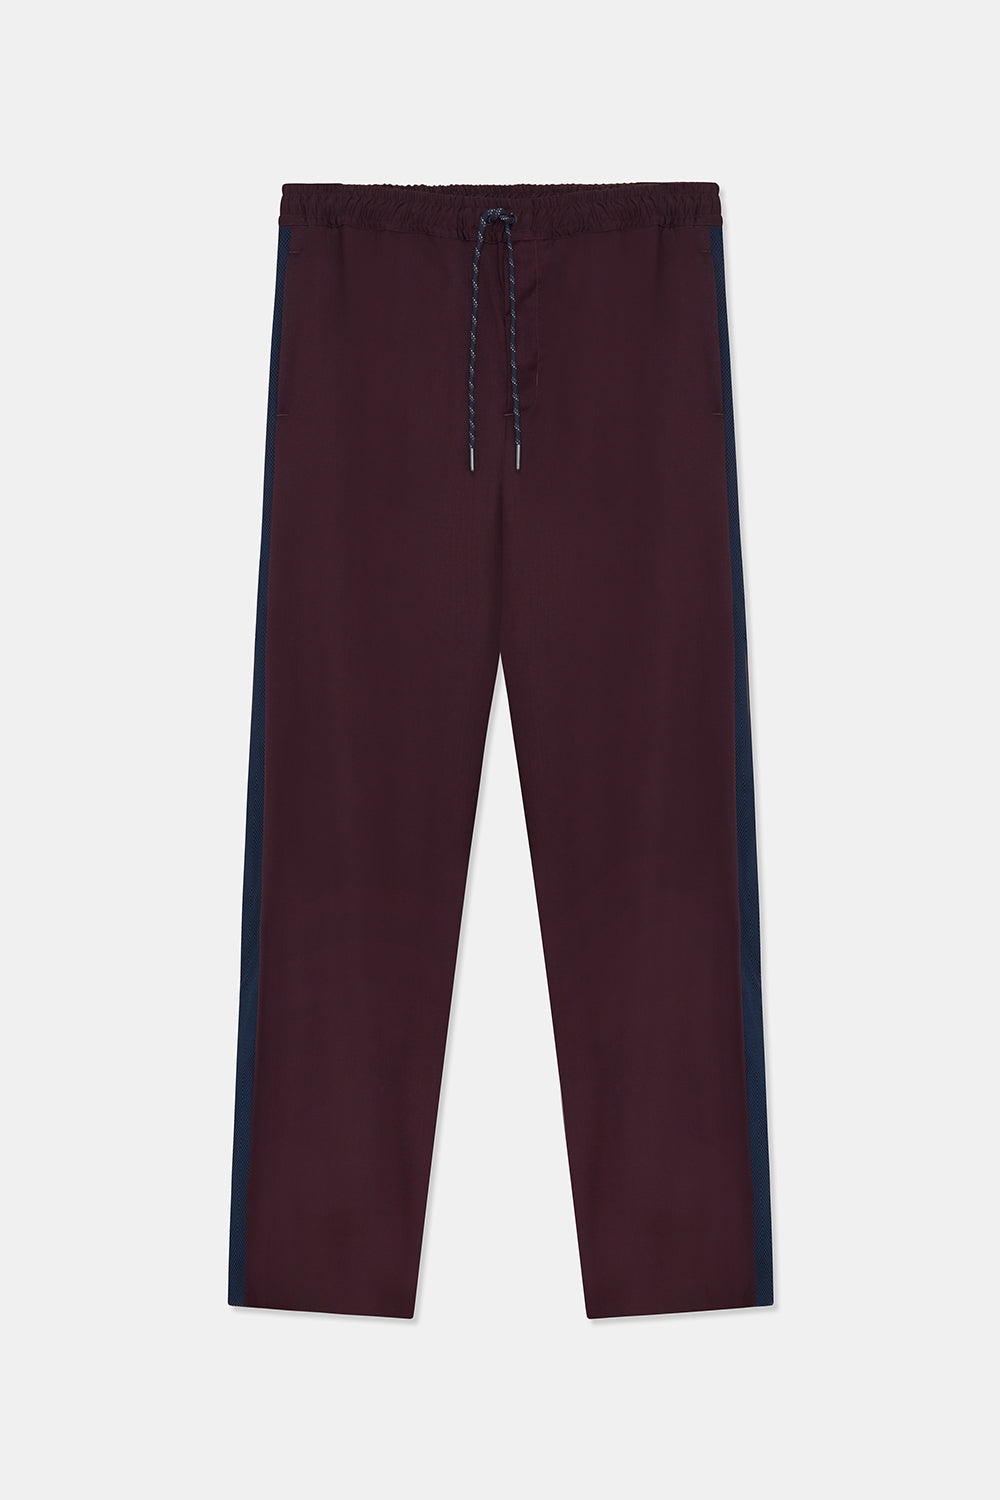 TOLIMANS WOOL TROUSERS